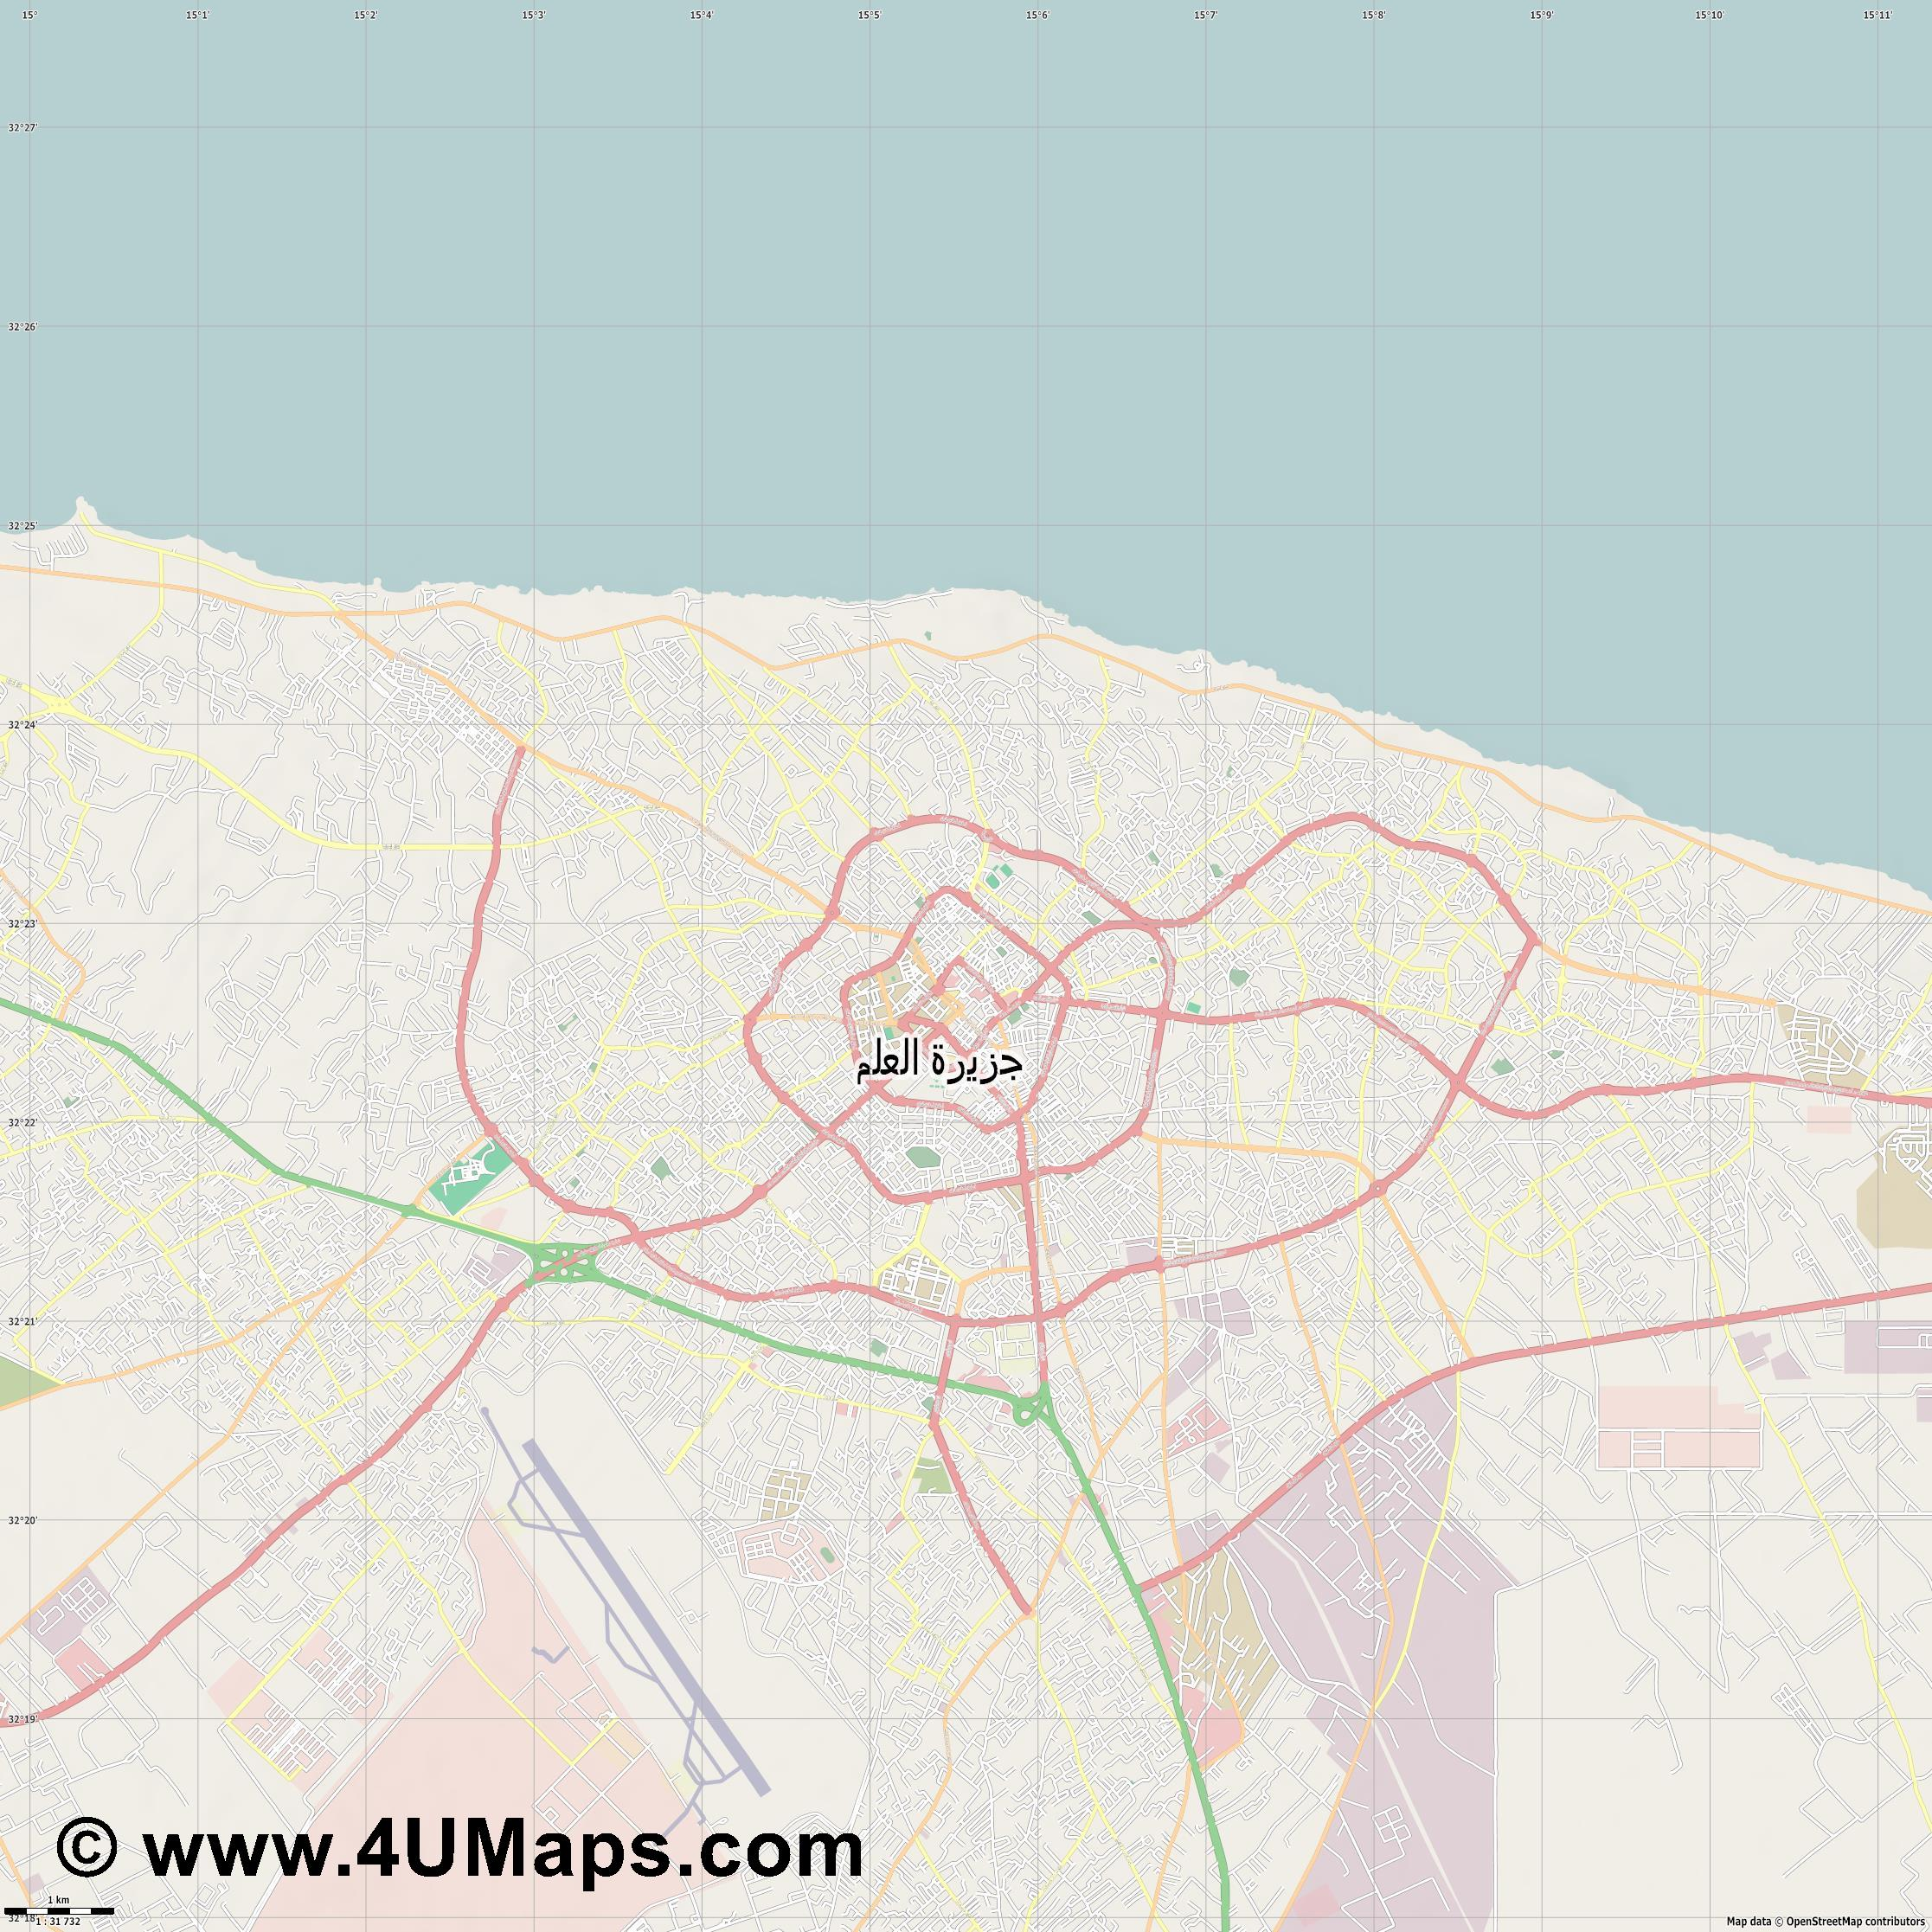 مصراتة Misrata Misurata  jpg high detail, large area preview vector city map